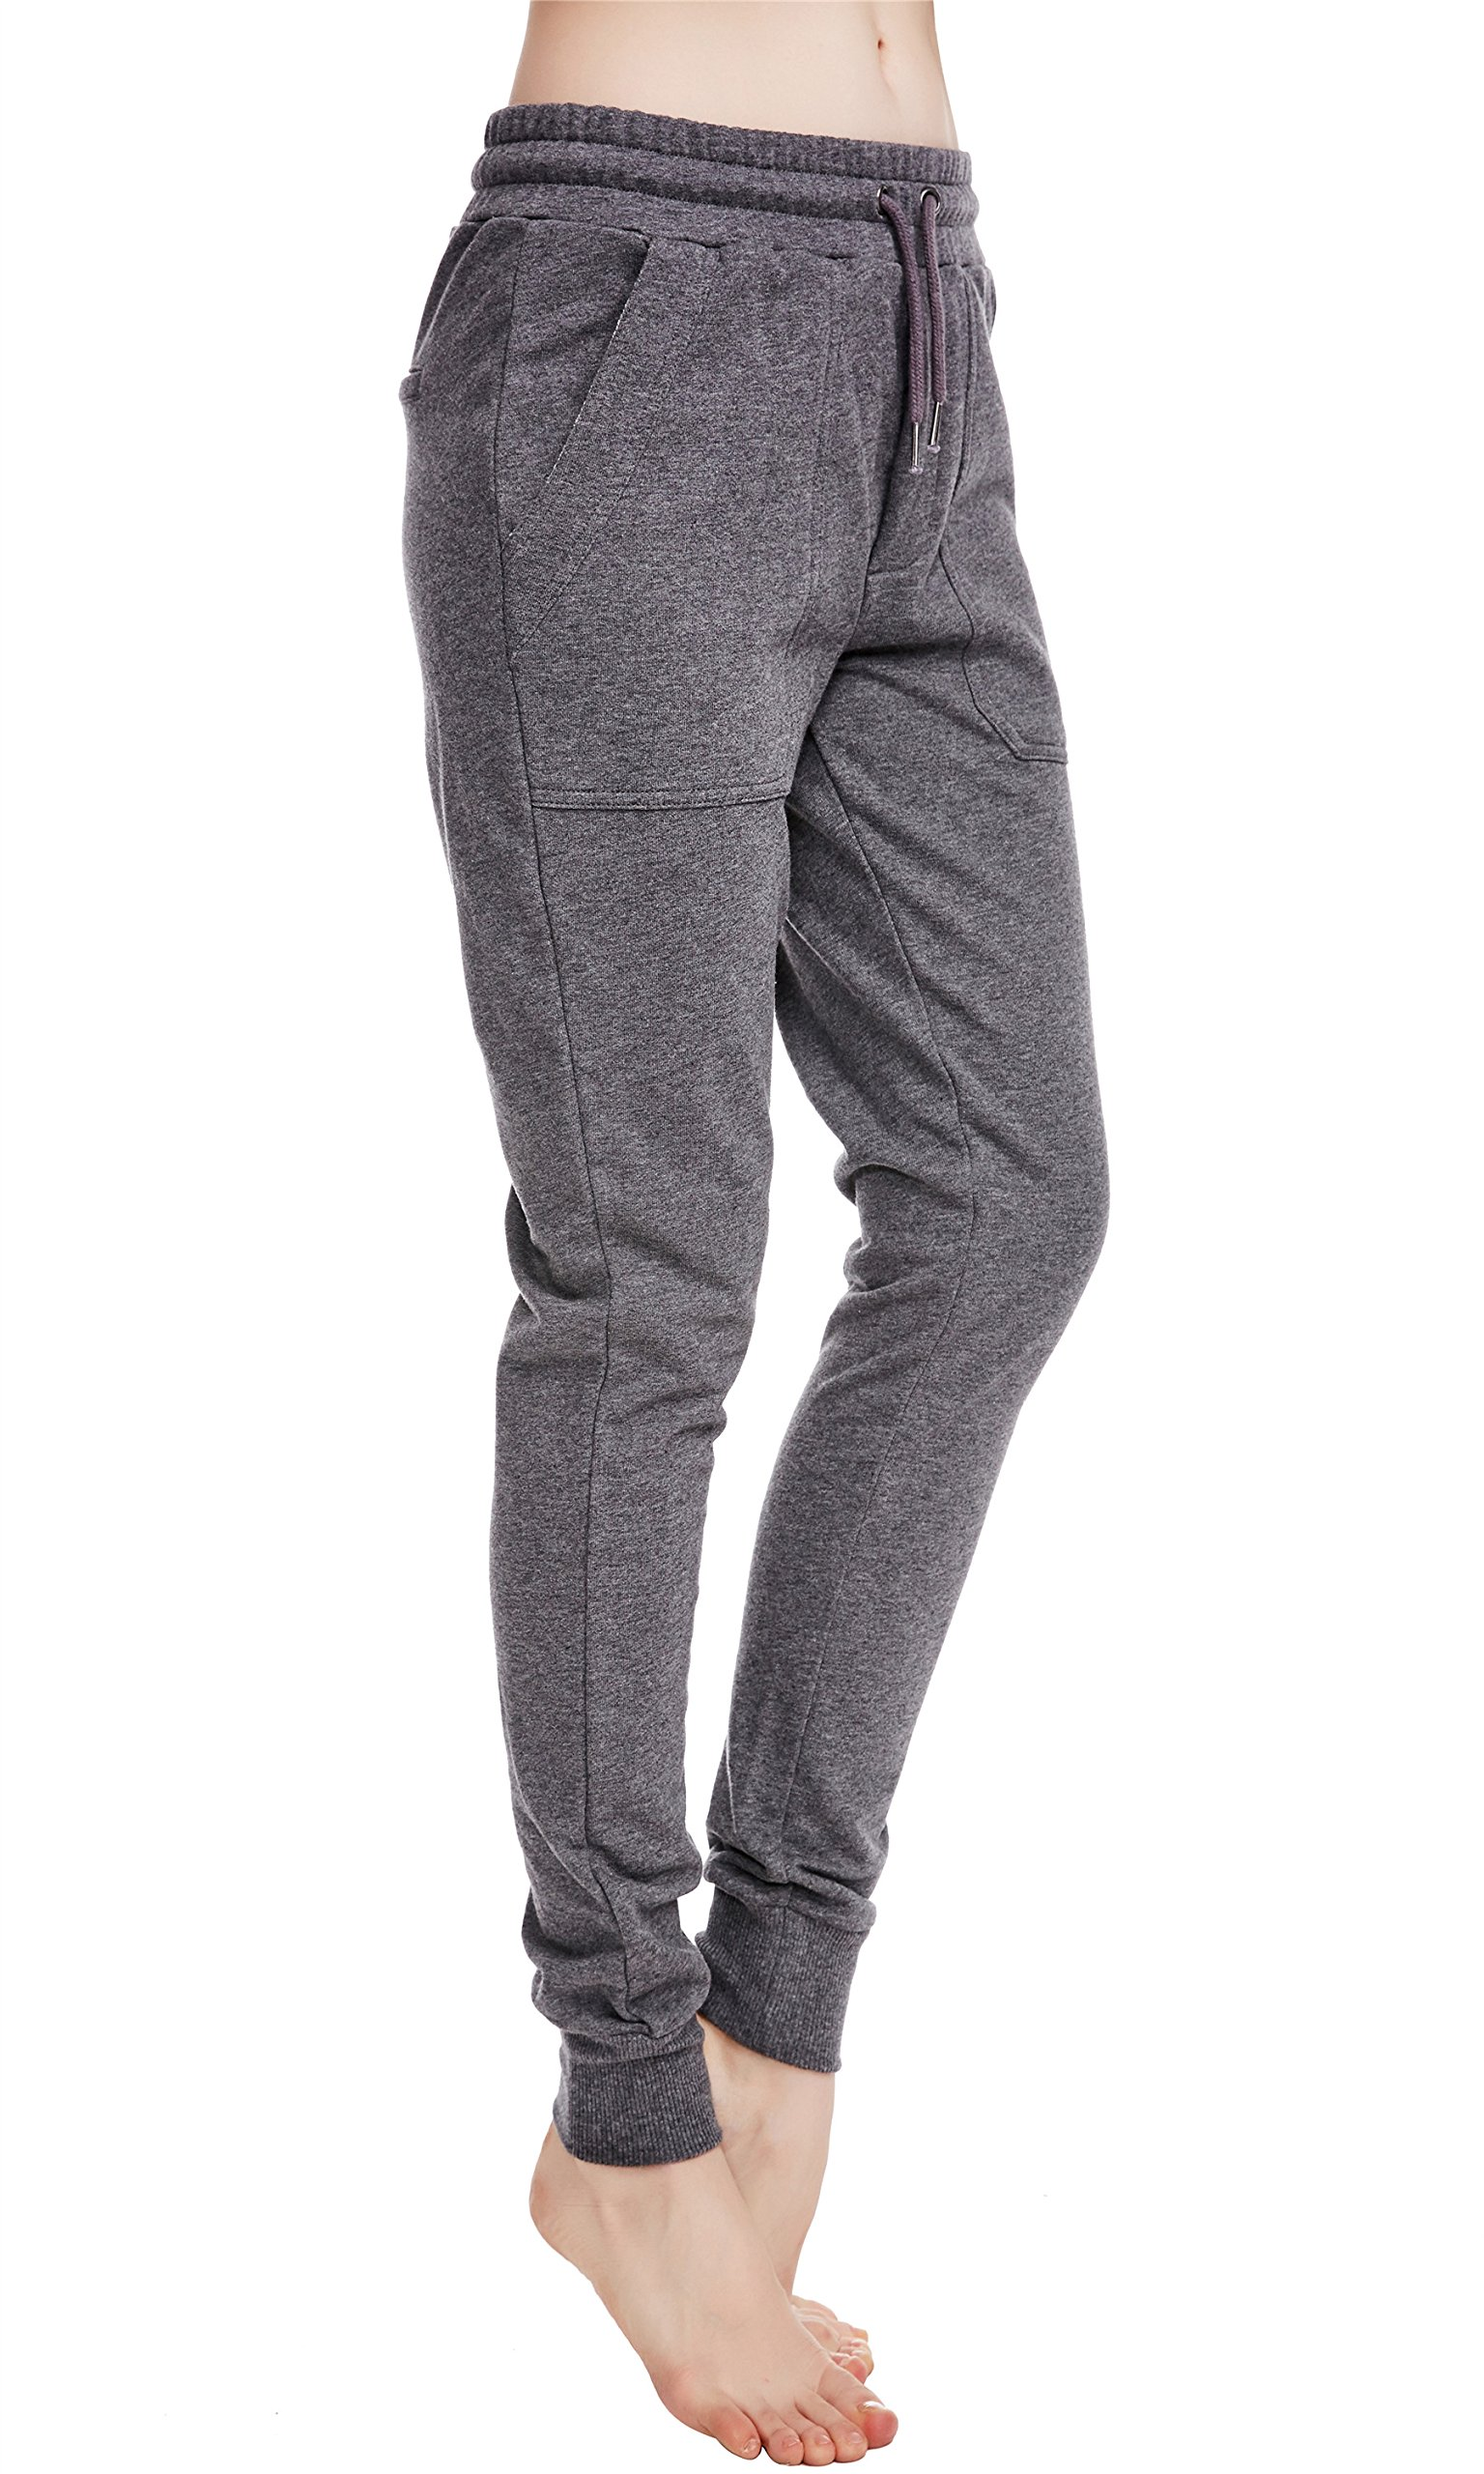 icyzone Women Sweatpants Joggers Activewear Workout Running Pants With Pockets (S, Athletic Grey)